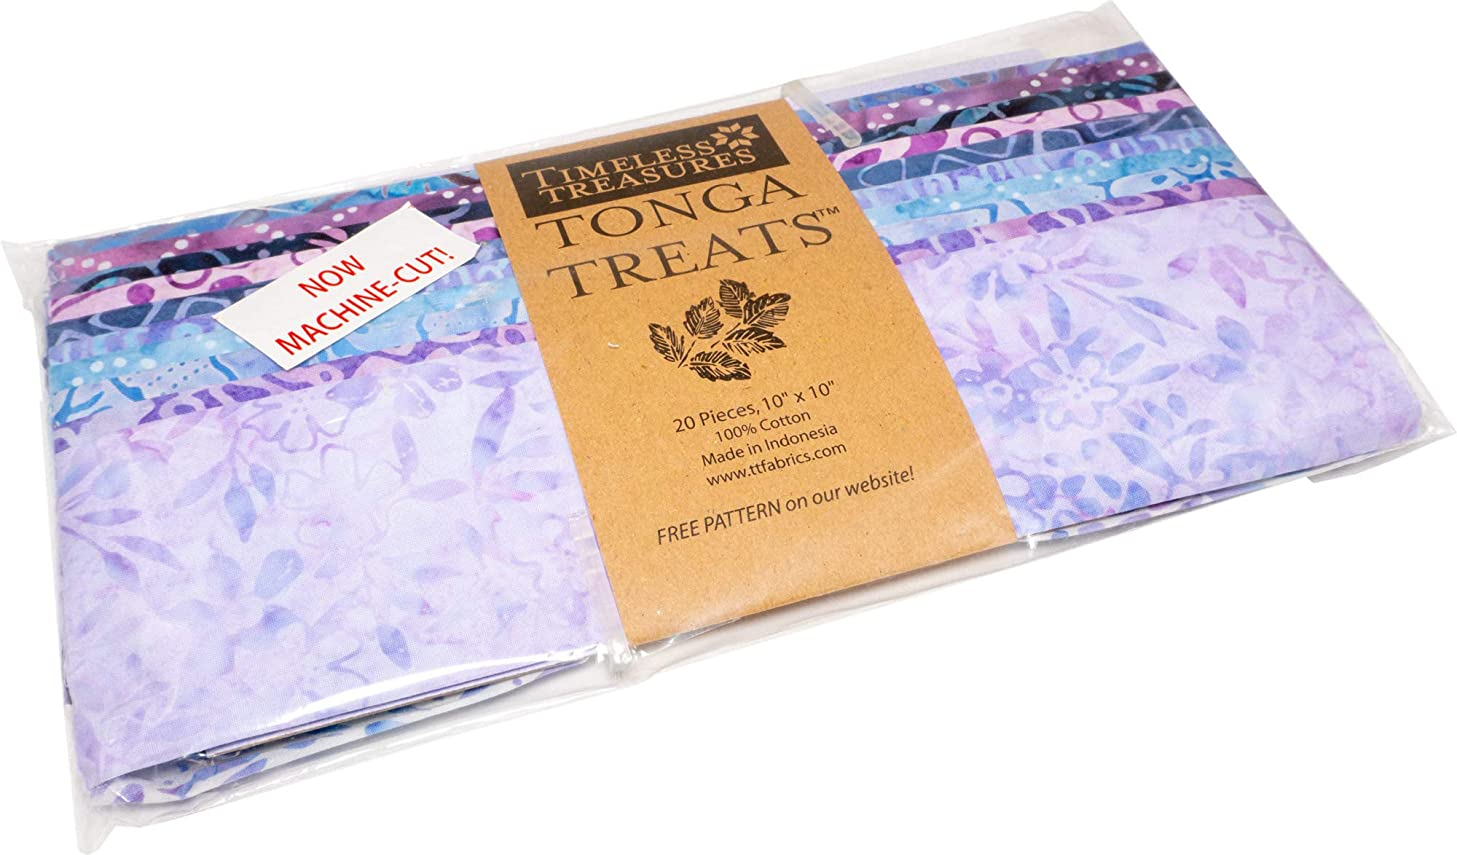 Tonga Treats Batiks Magic Shortcake 20 10-inch Squares Layer Cake Timeless Treasures Fabrics